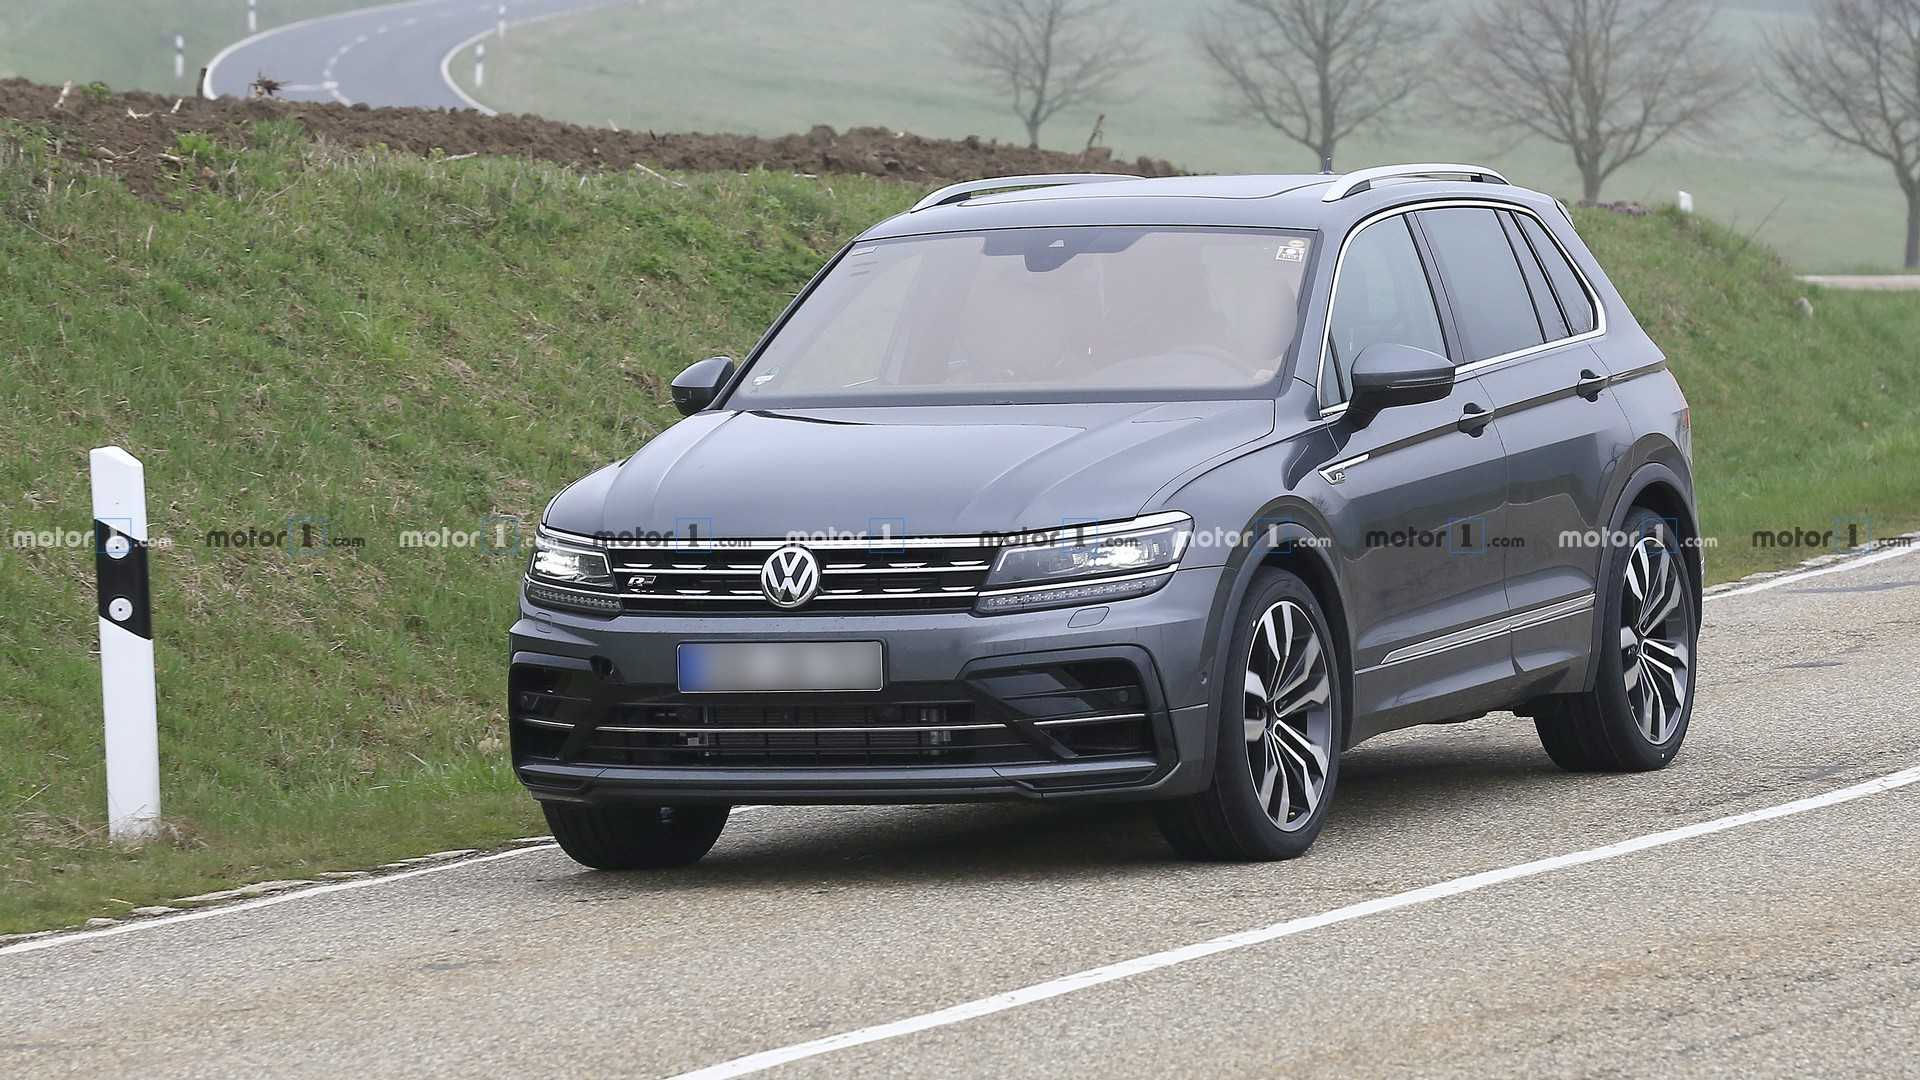 2021 VW Tiguan R-Line – Release Date, Price And Photos >> Vw Tiguan R Hot Crossover Spied As R Line With Quad Exhausts